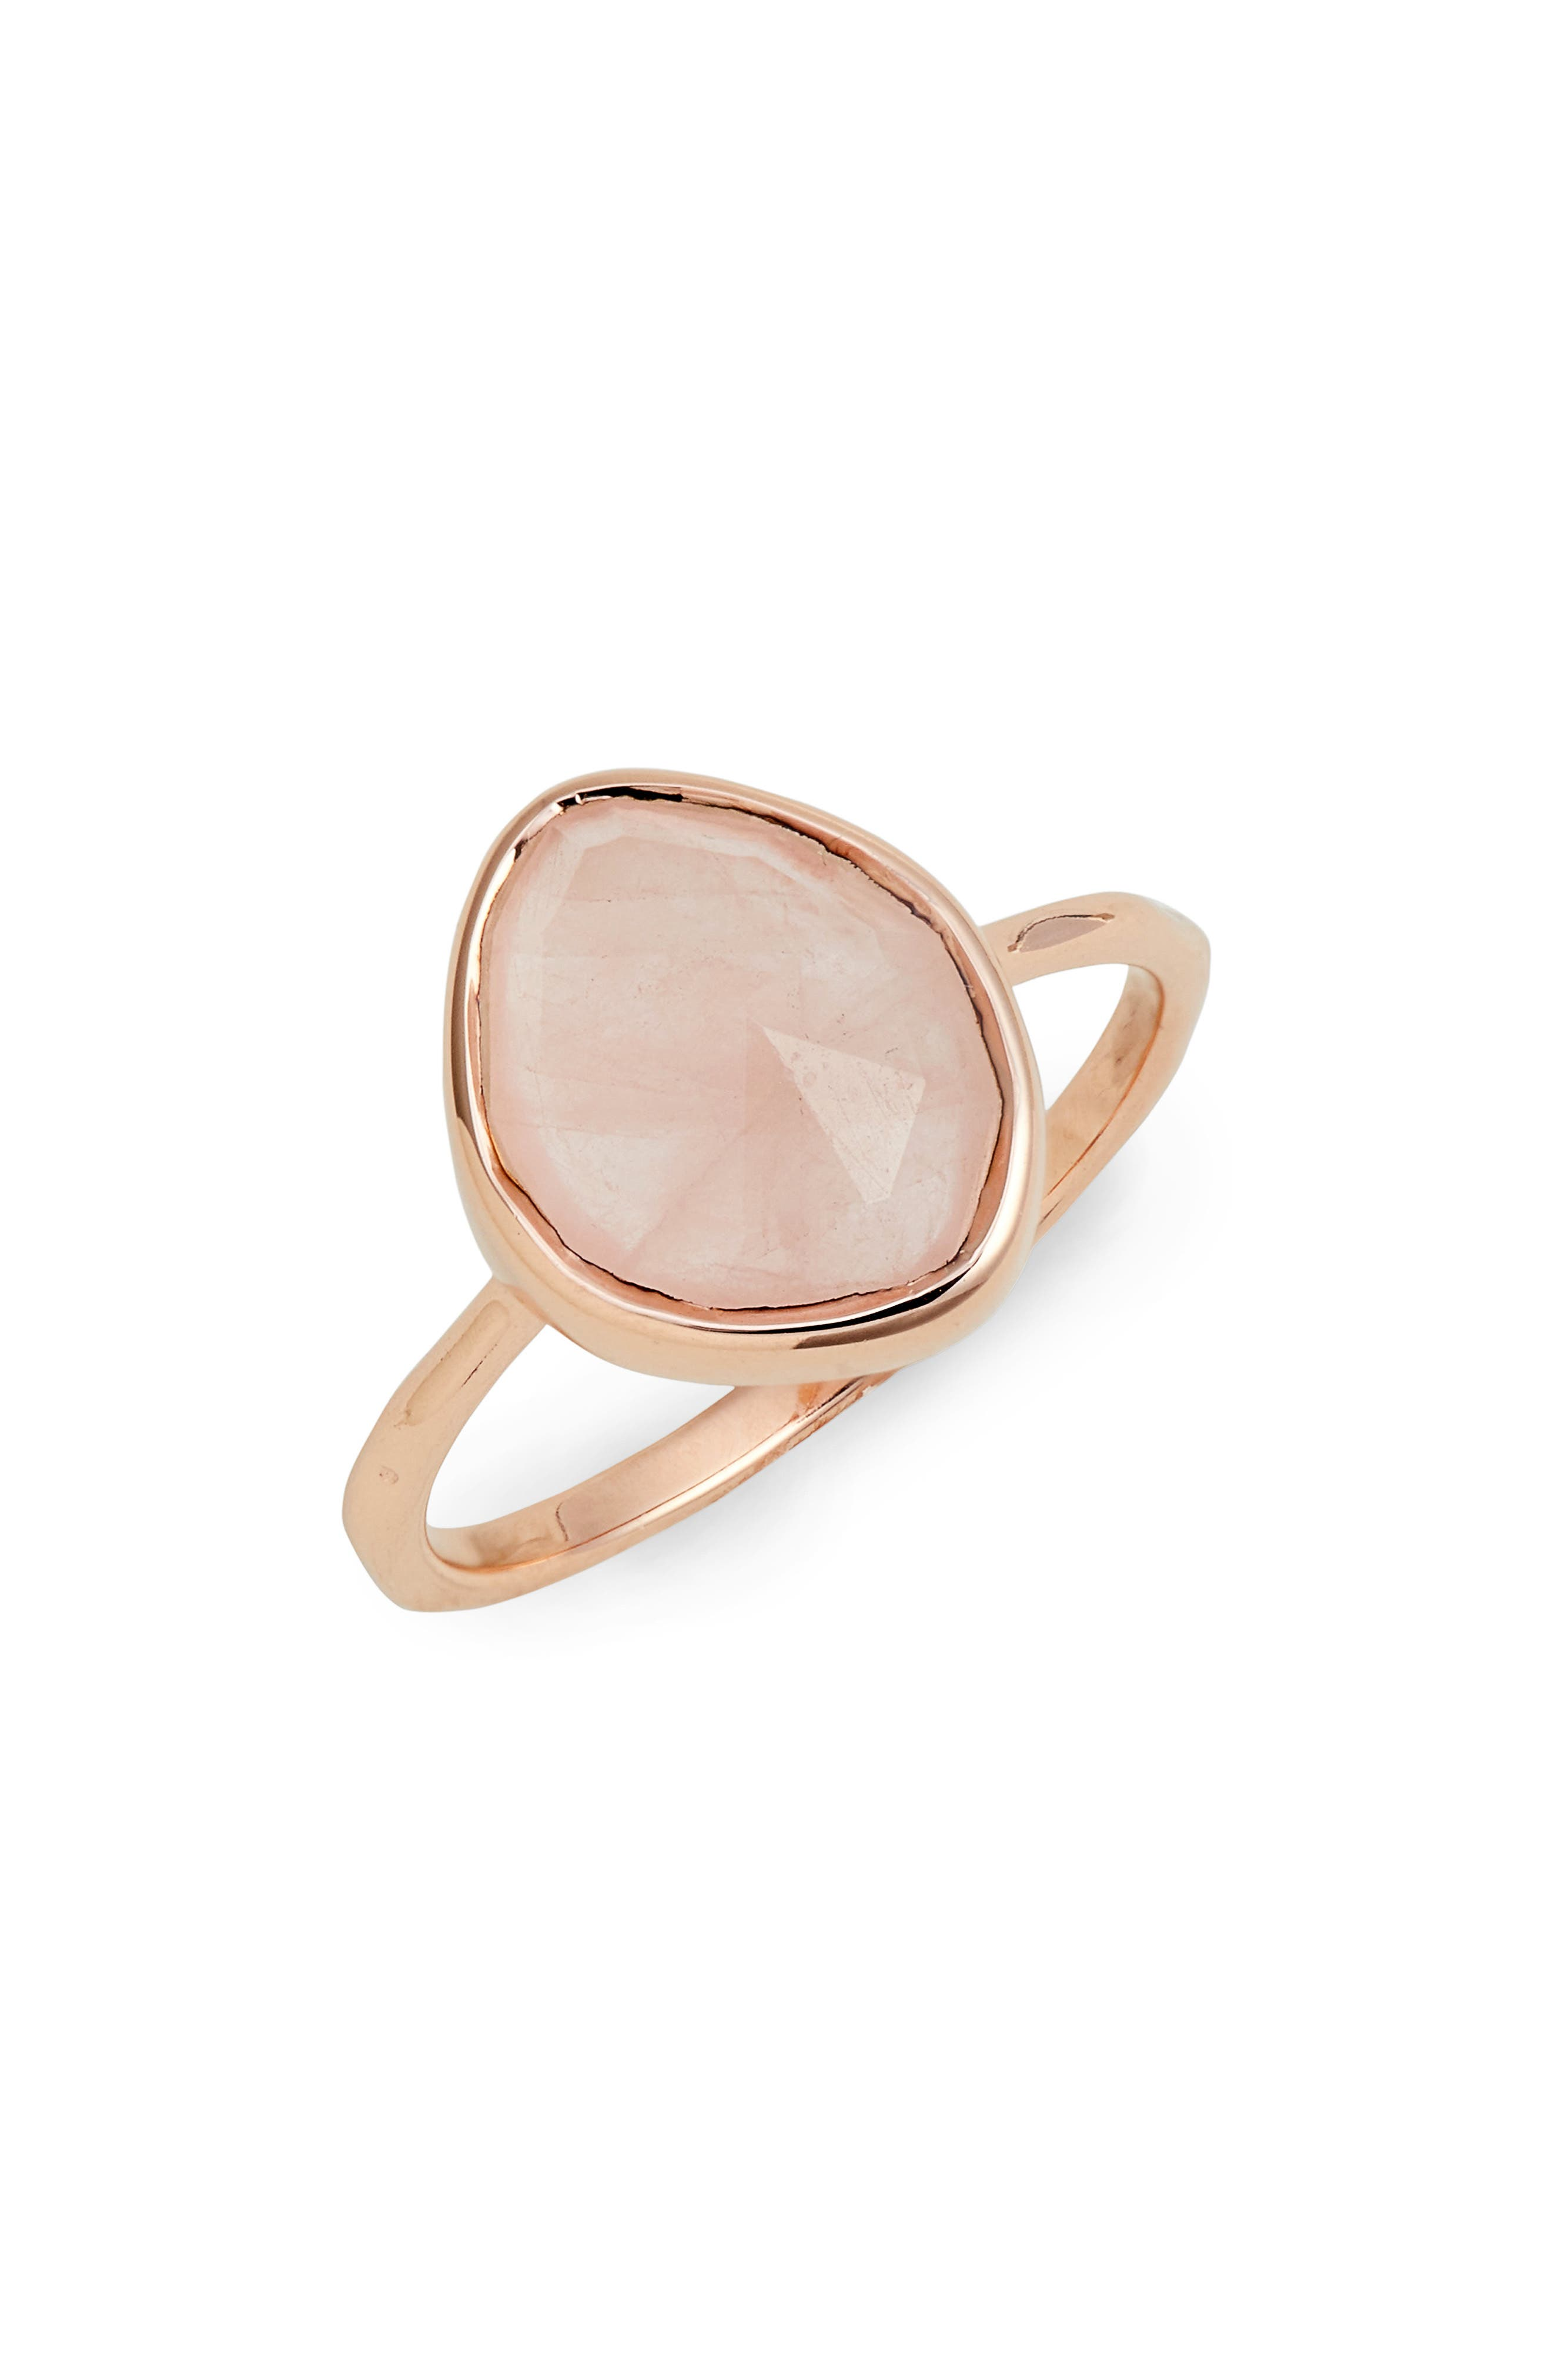 Siren Small Nugget Stacking Ring,                         Main,                         color, Rose Gold/ Rose Quartz